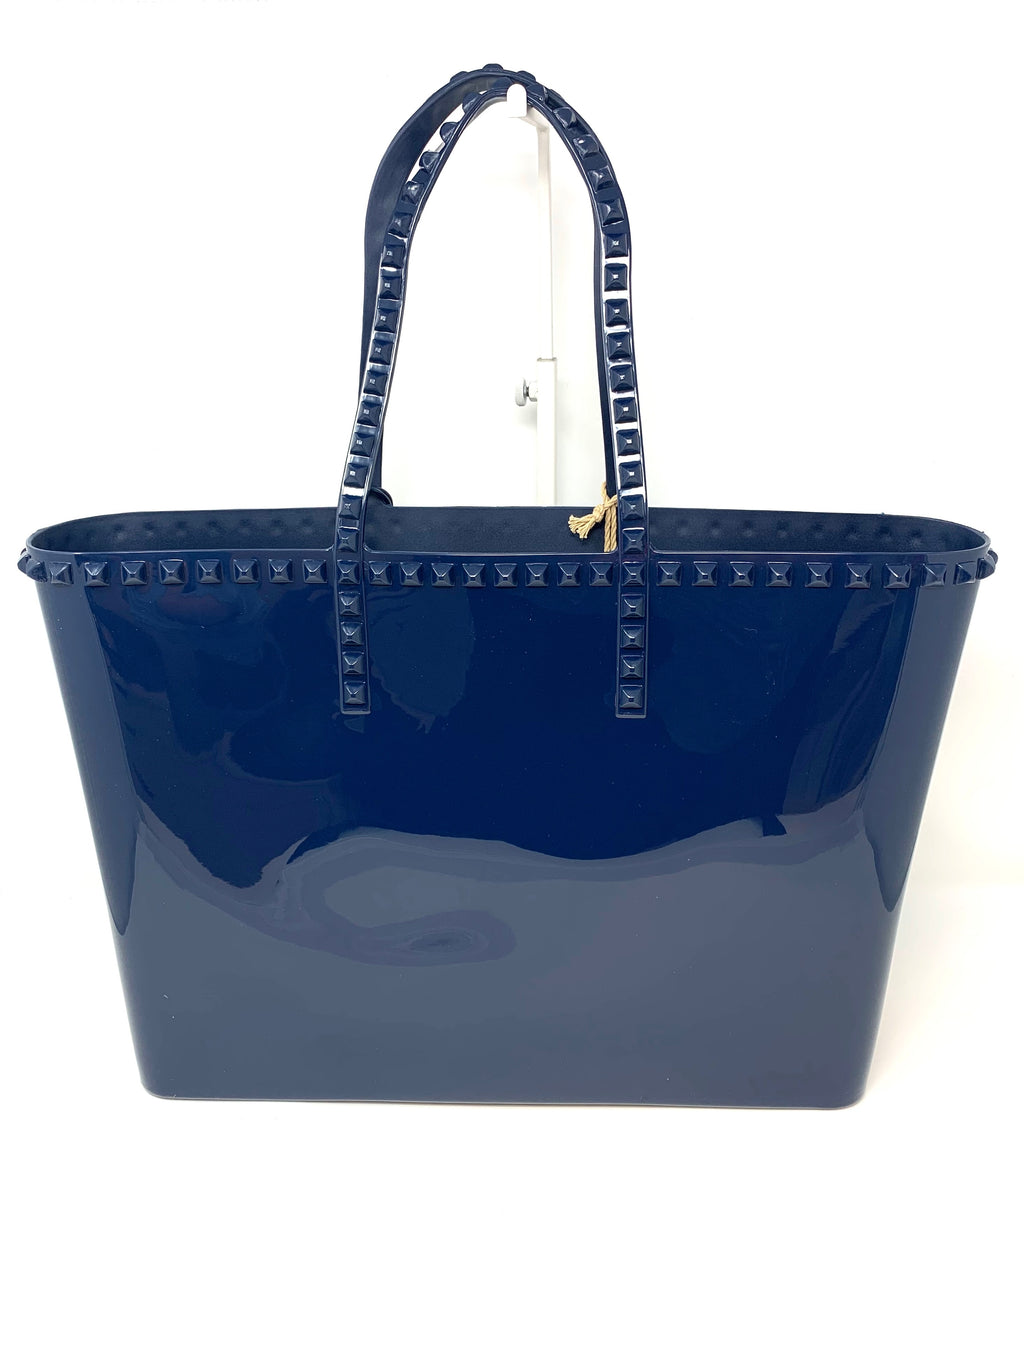 Studded Jelly Large Tote in Navy